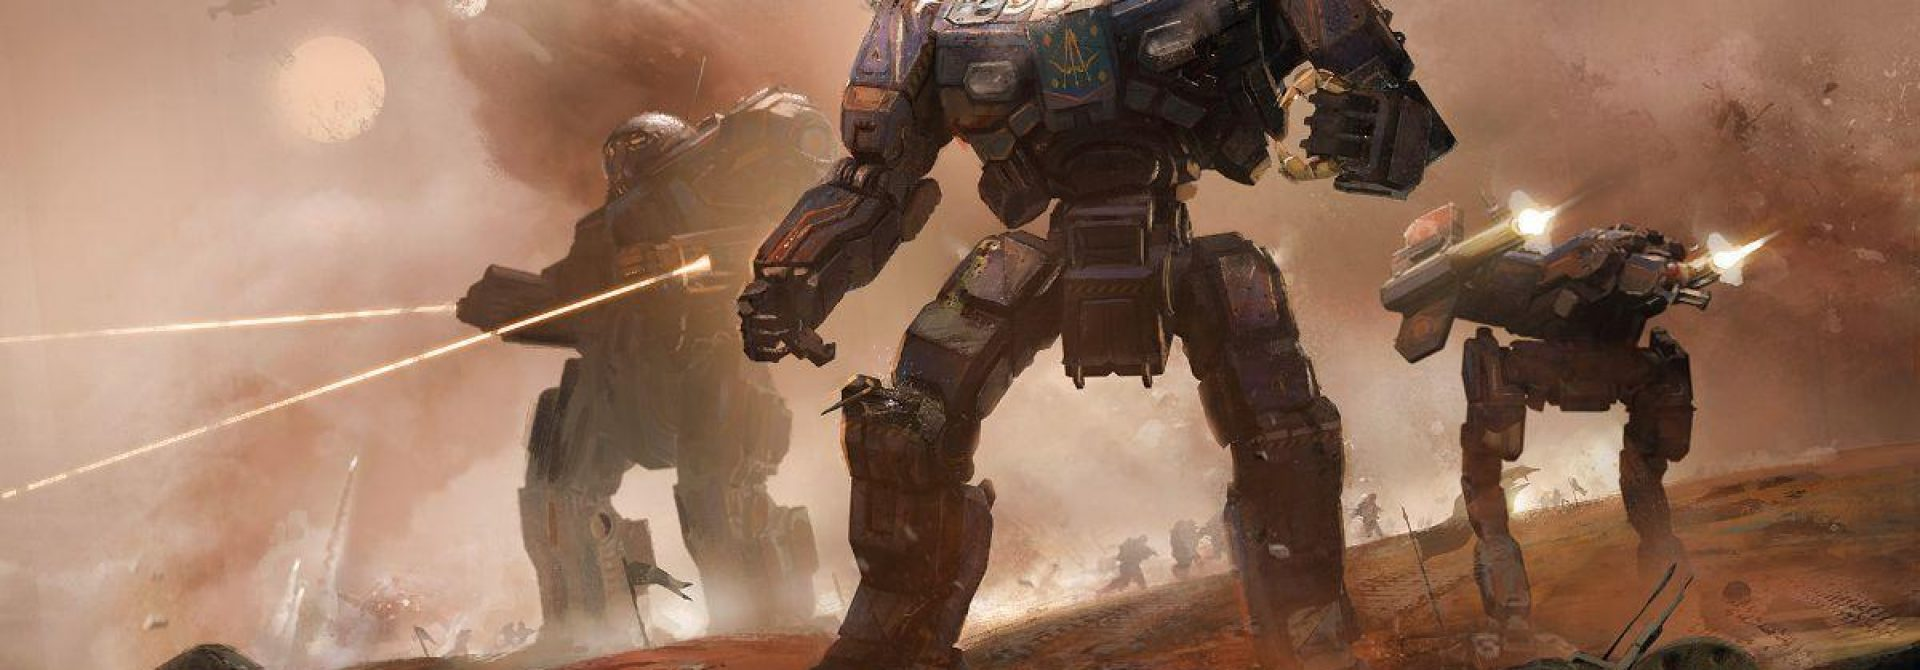 Battletech Review (Steam)